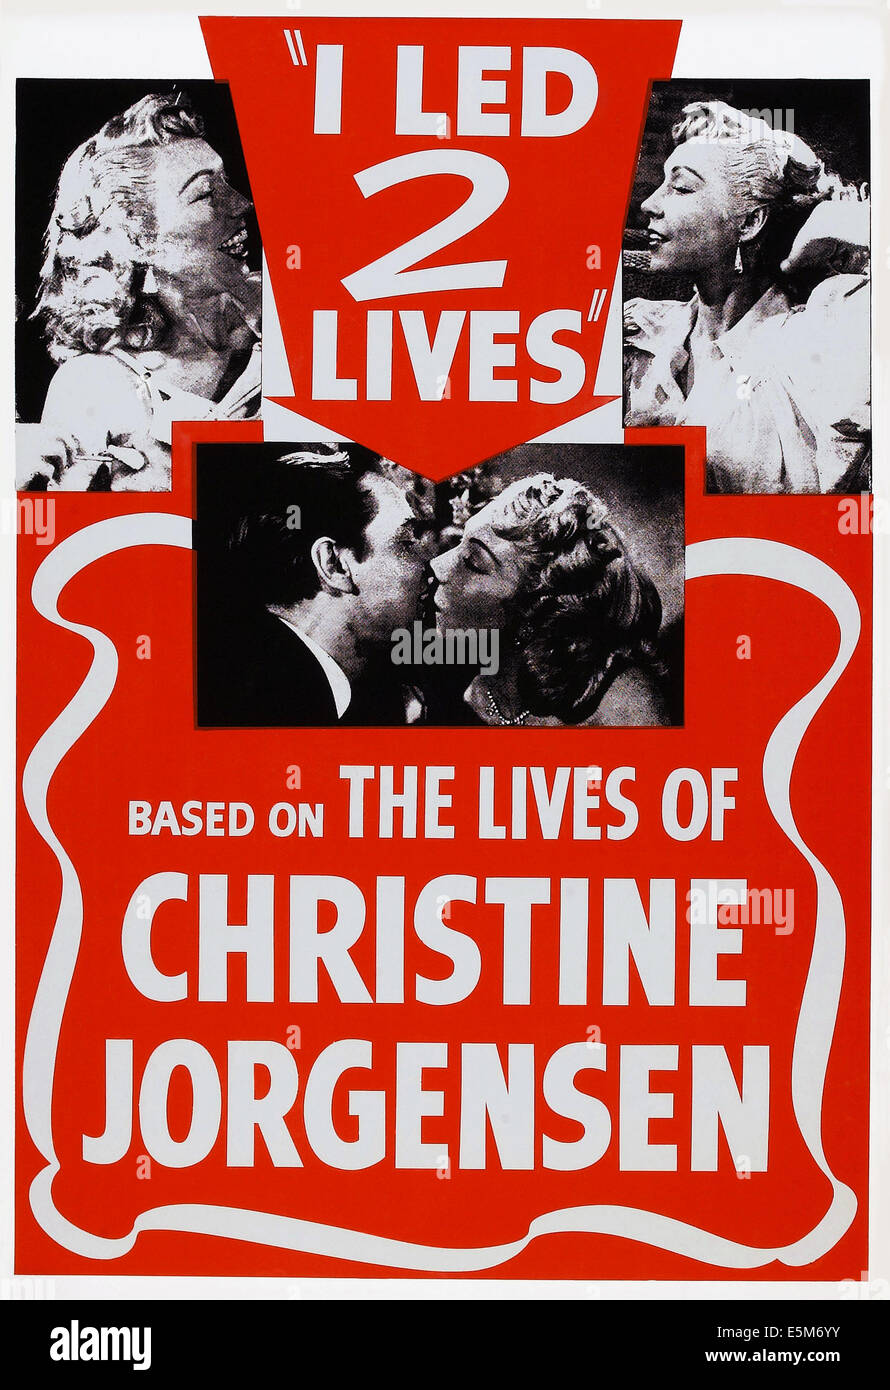 GLEN OR GLENDA, (aka I LED 2 LIVES), US poster art, center, from left: Ed Wood, Dolores Fuller, 1953 - Stock Image